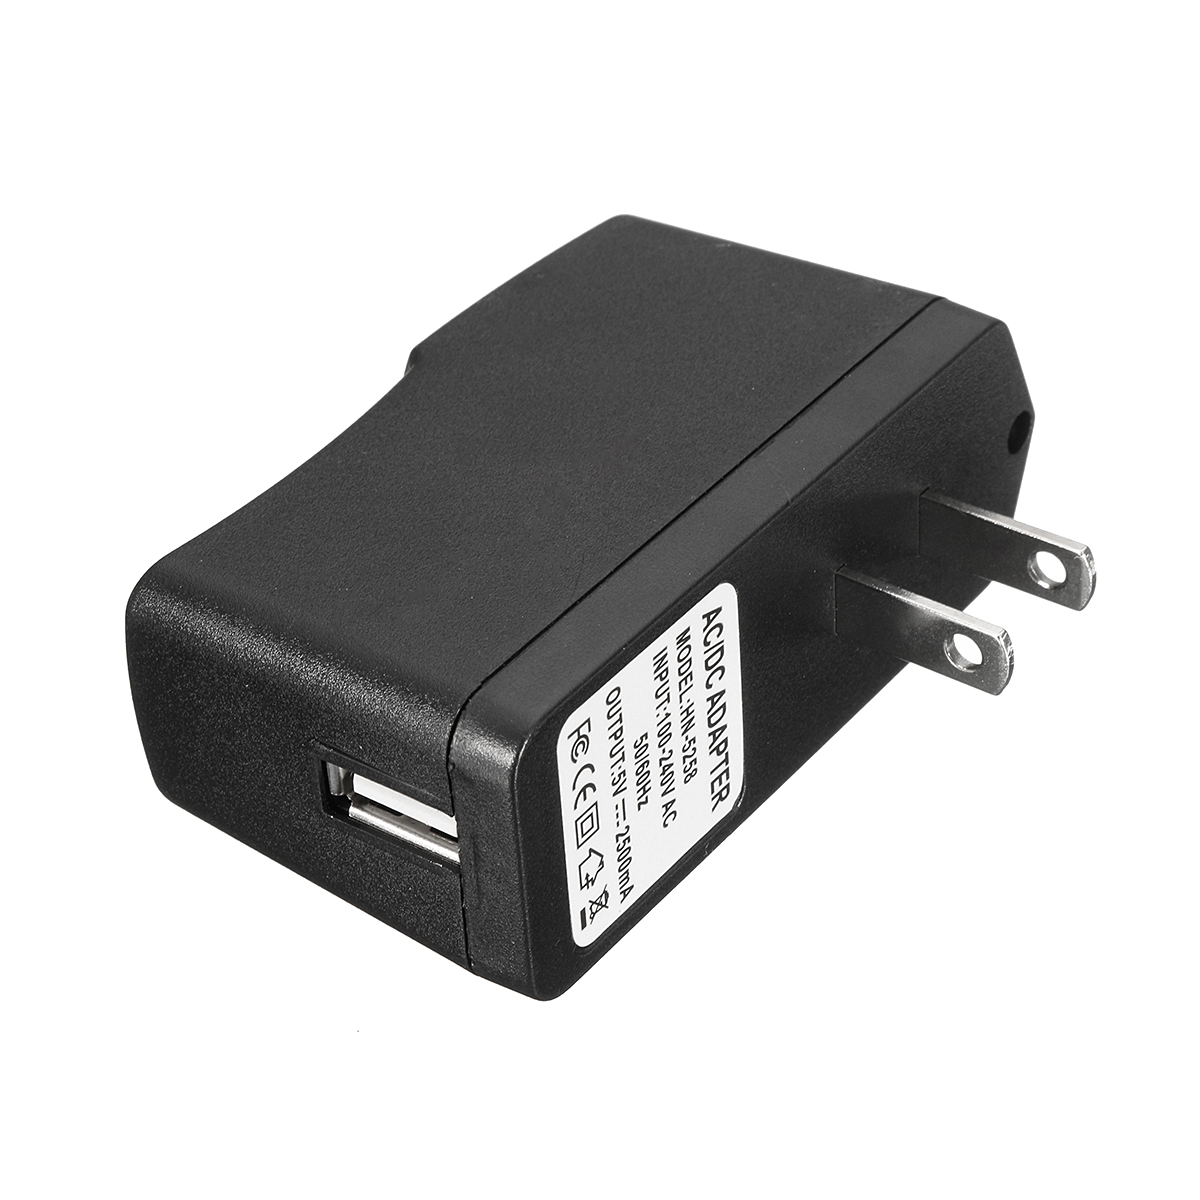 5V 2.5A Raspberry pi AC 100-240V DC US Plug USB Power Supply Adapter Charger